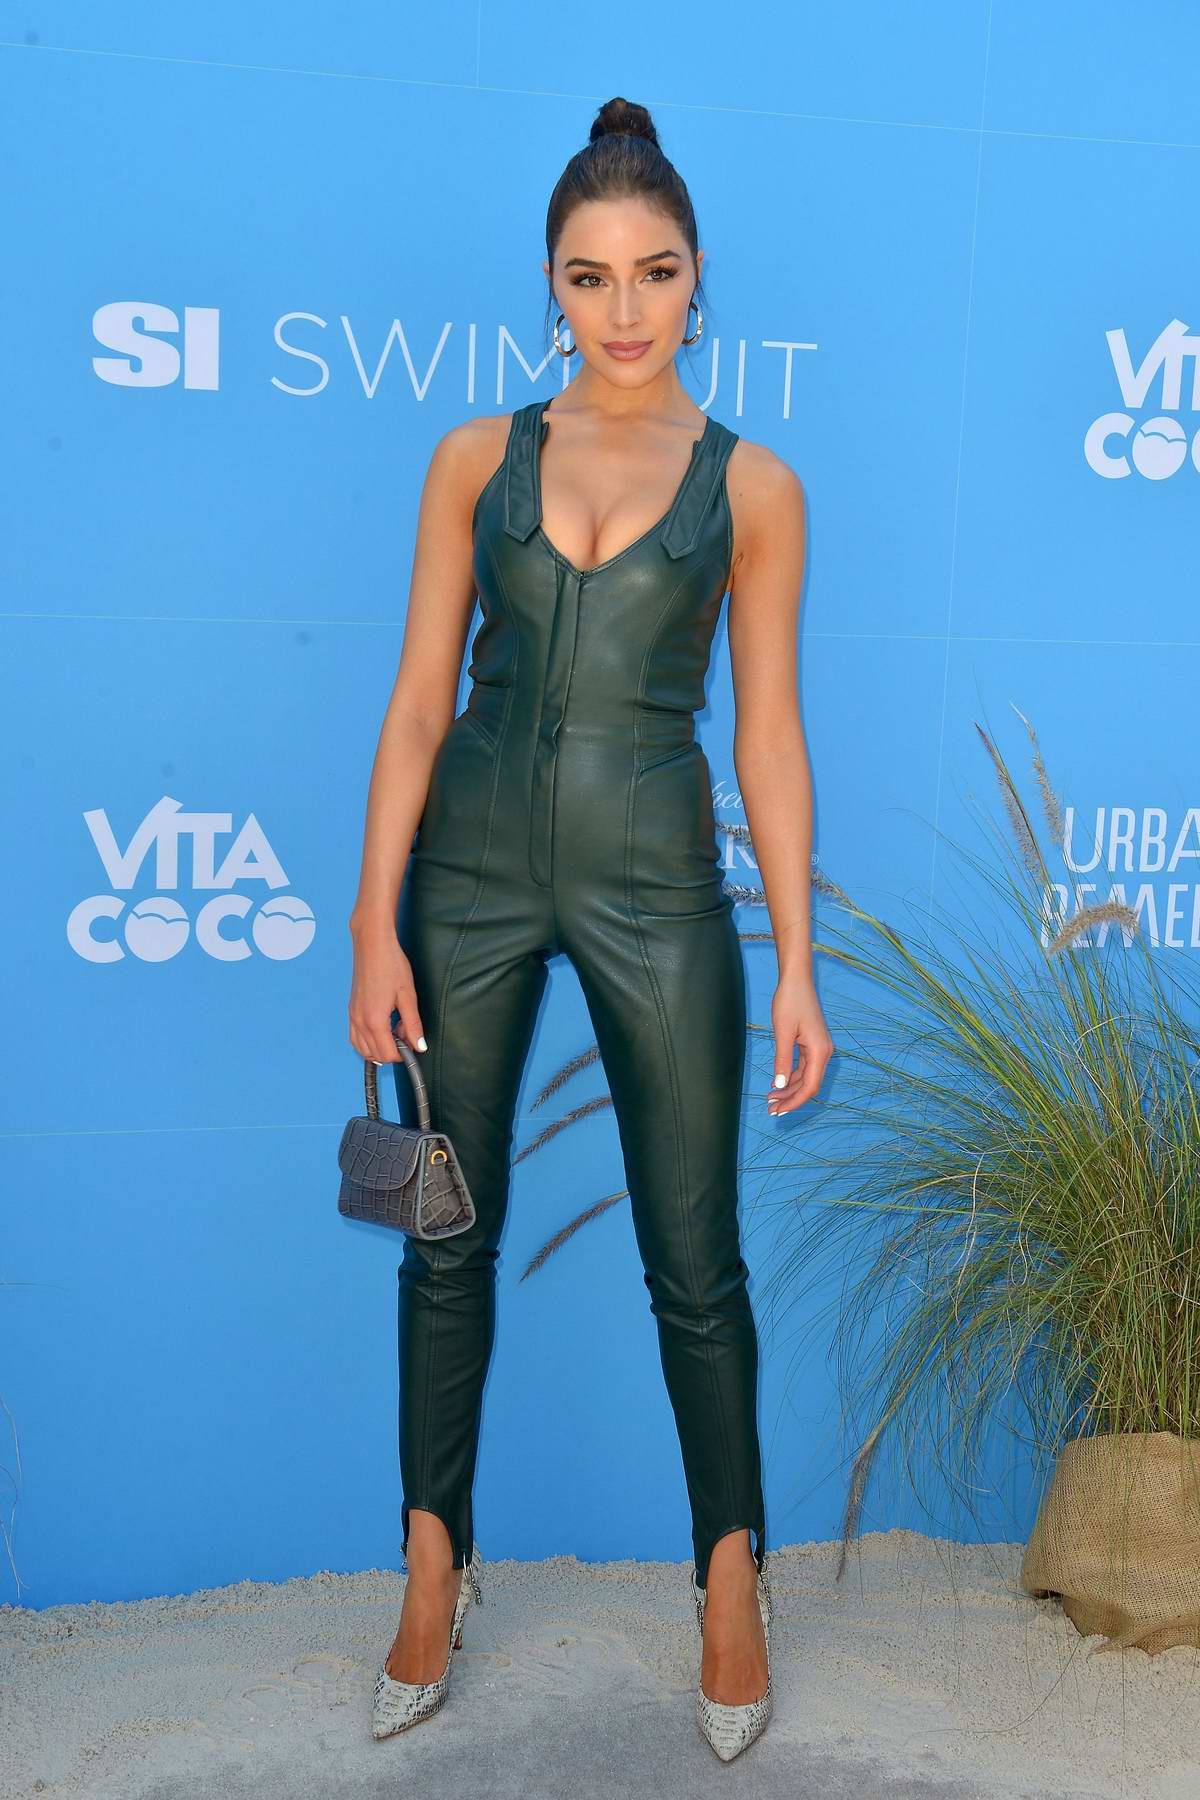 Olivia Culpo attends the '2019 Sports Illustrated Swimsuit On Location' at Ice Palace Film Studios in Miami, Florida